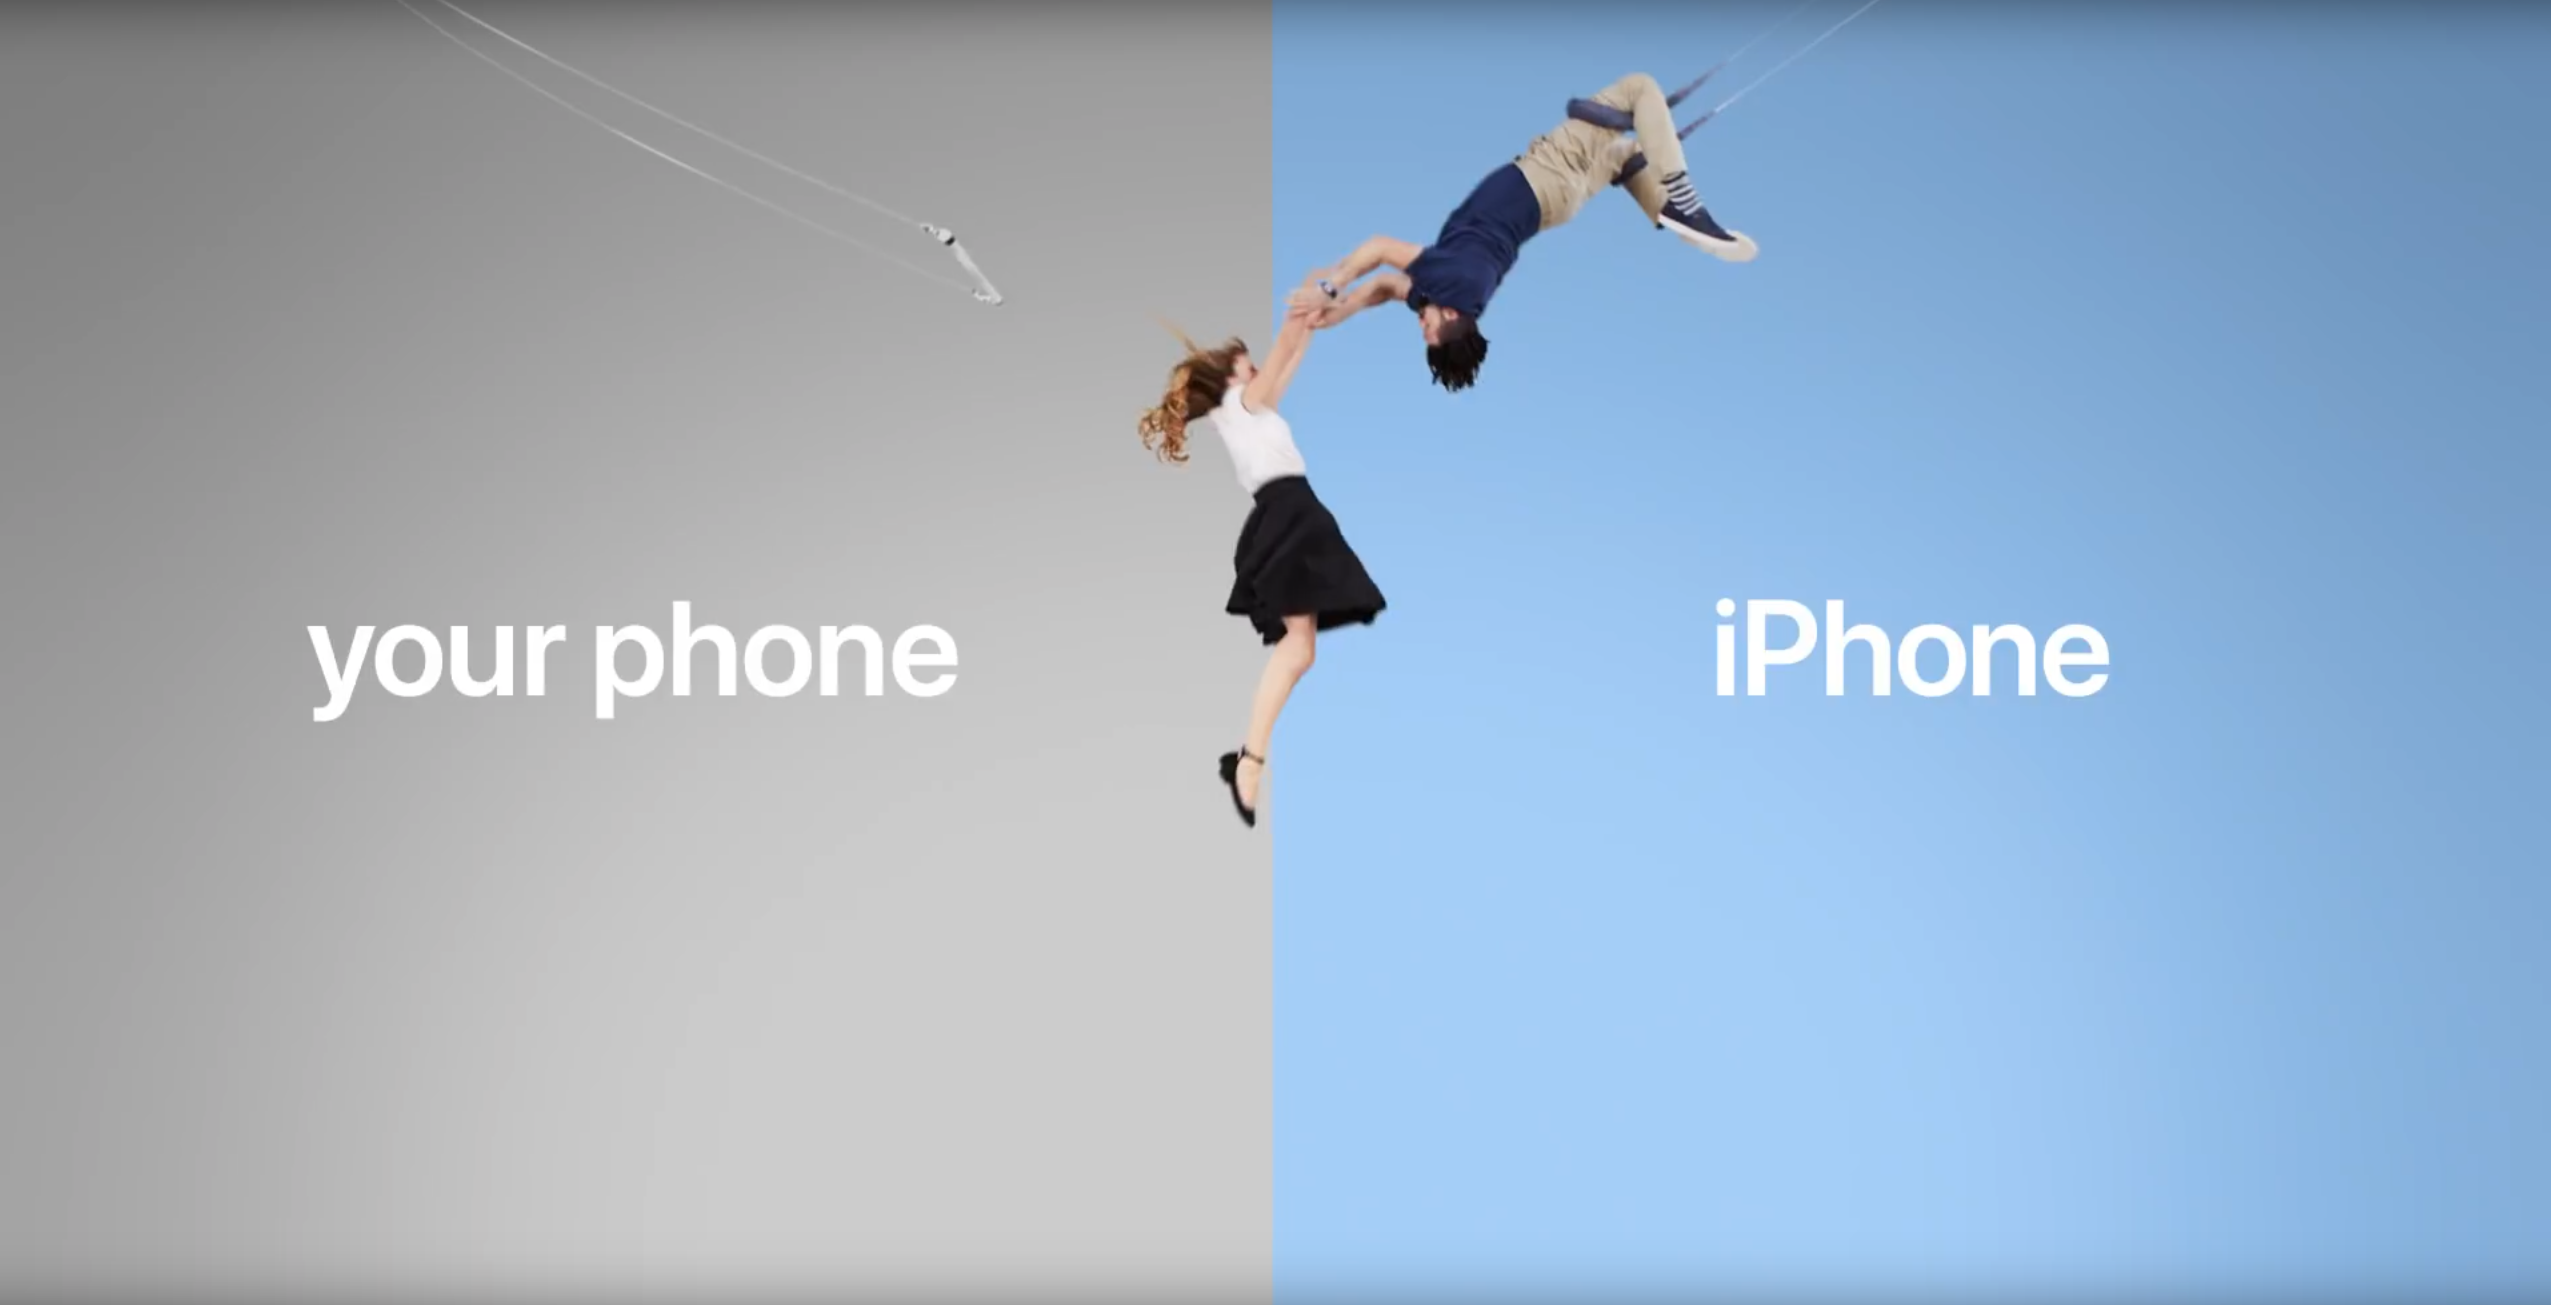 Your iPhone